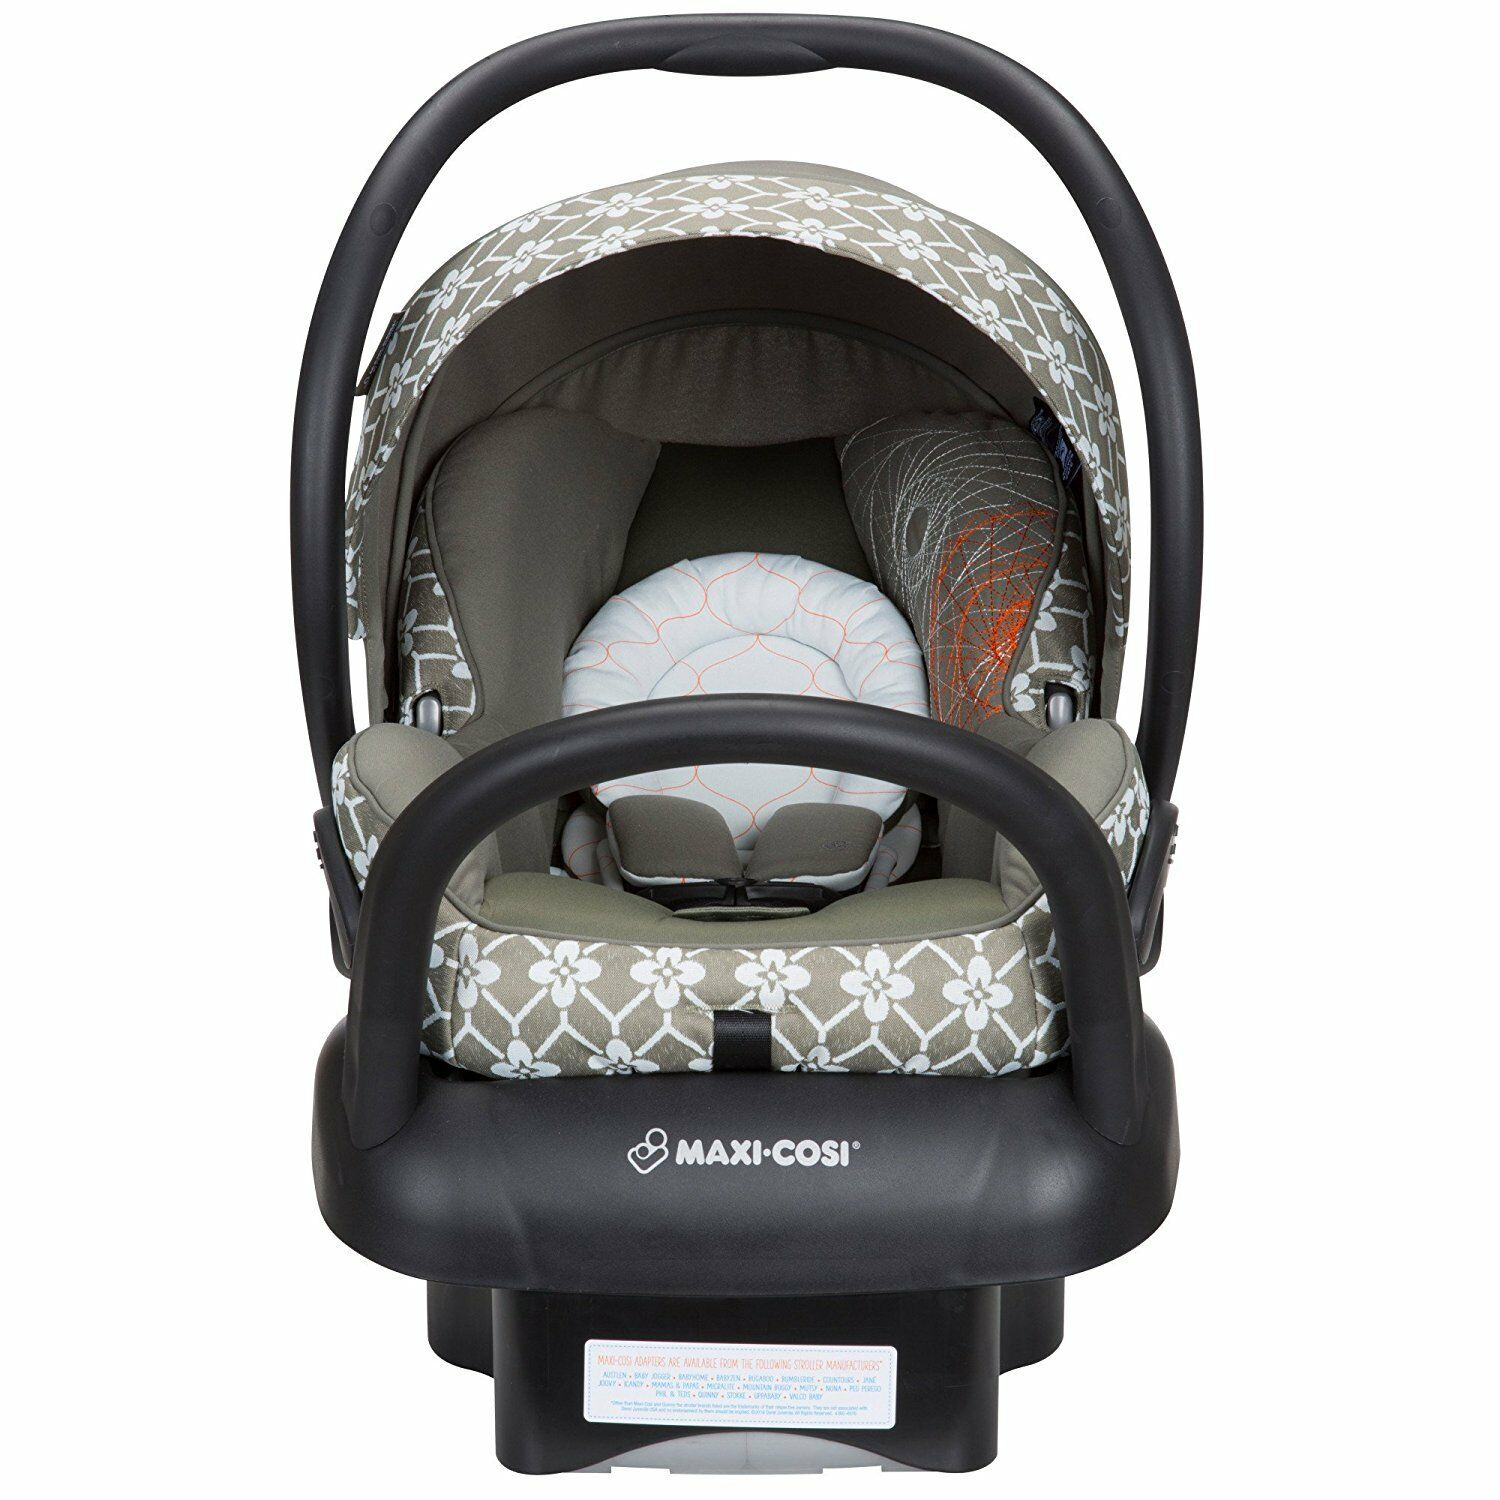 Maxi-cosi Adorra Travel System - Graphic Flower Maxi Cosi Adorra Travel System Graphic Flower Stroller Mico Max 30 Car Seat